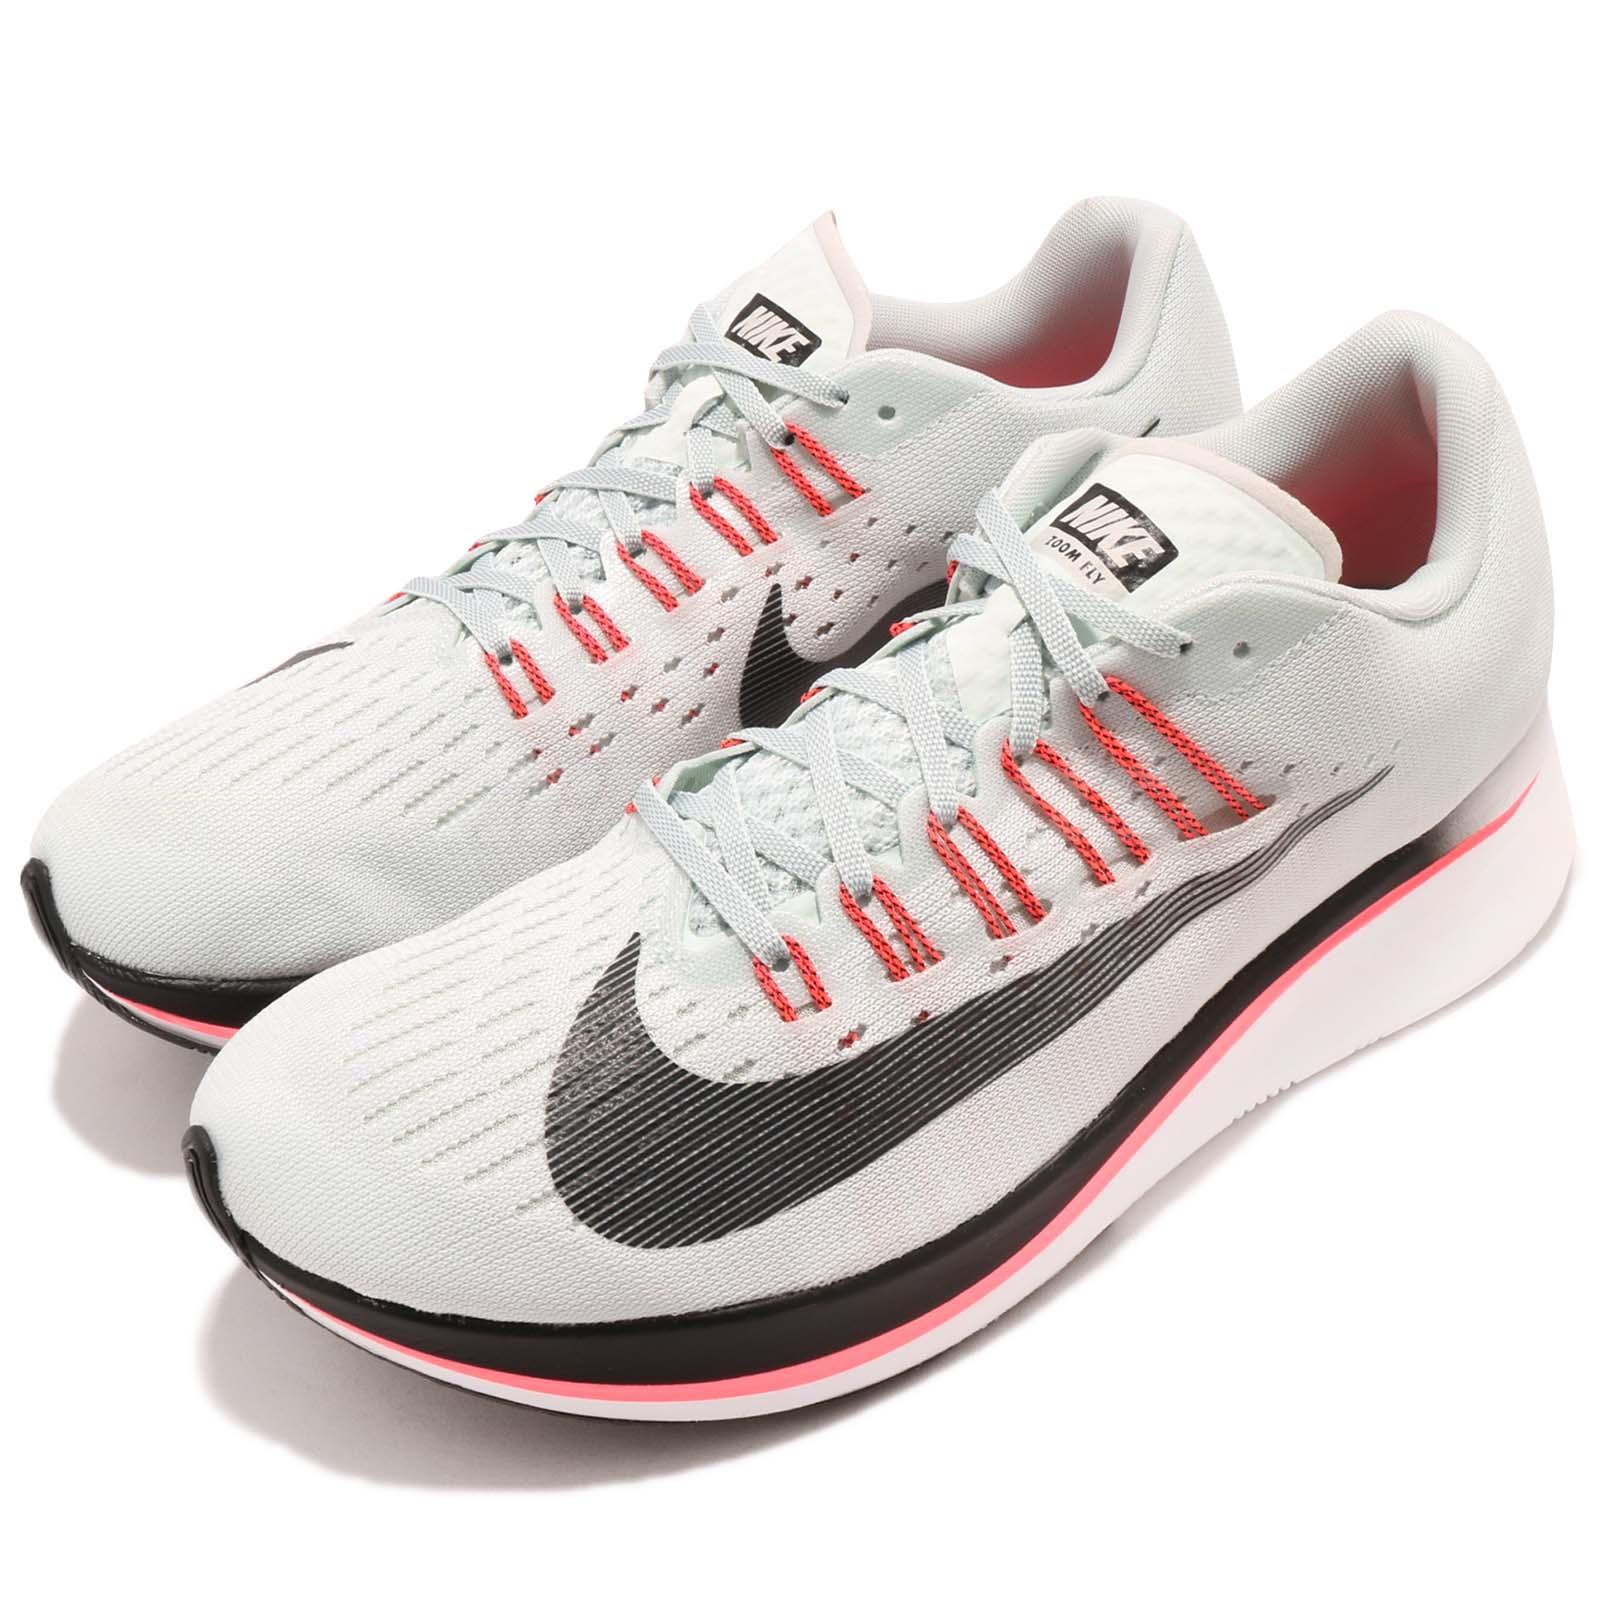 About Fly Sneakers Punch Zoom Barely Running Details 880848 009 Nike Men Hot Shoes Grey White TFKJ35ul1c